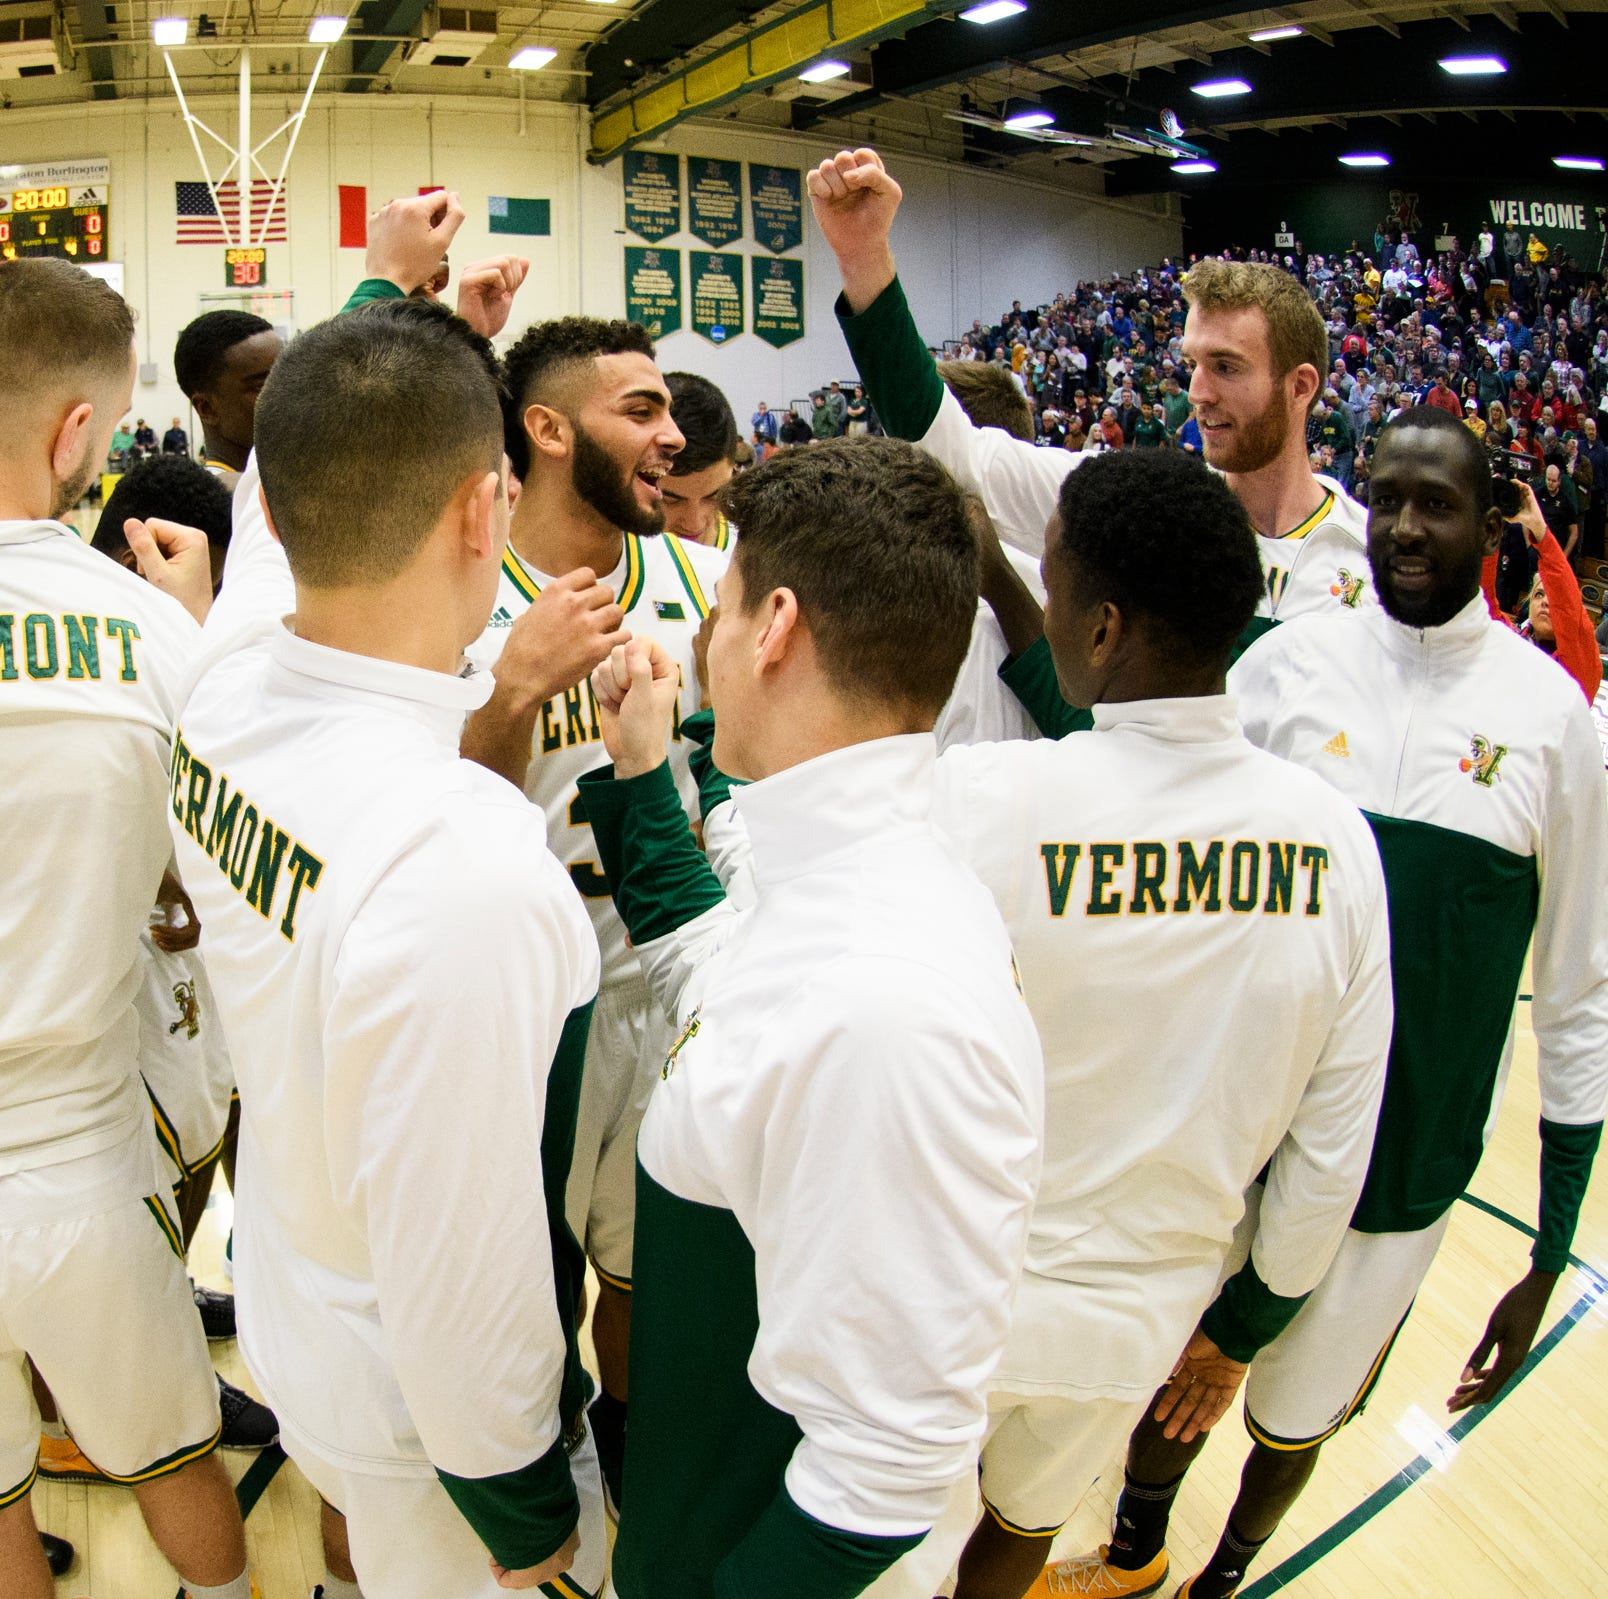 Thursday's Vermont sports scores and Friday's schedule